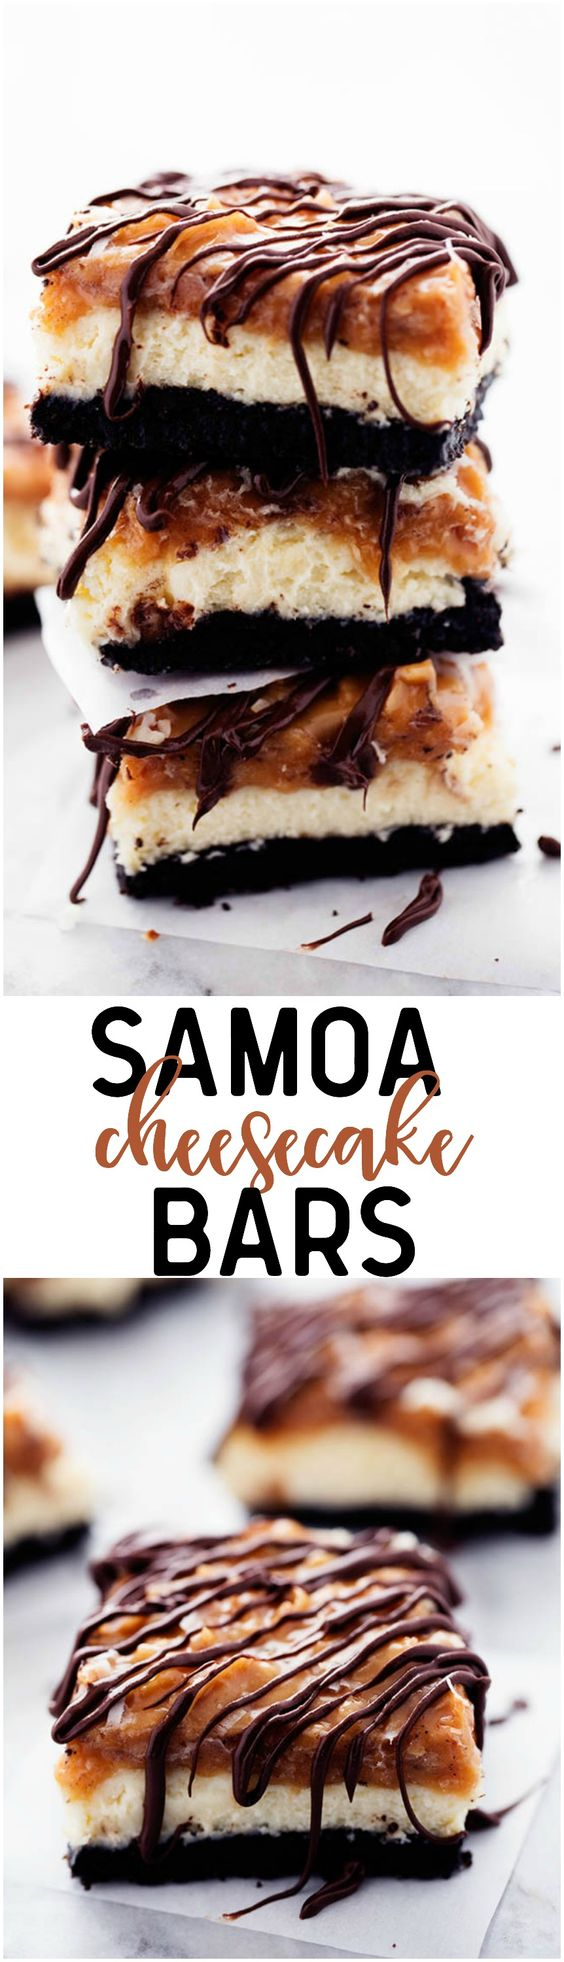 A chocolate oreo crust with creamy cheesecake in the center and topped with coconut caramel and drizzled in chocolate. All of the things that you love in a Samoa Cookie in a delicious cheesecake dessert!